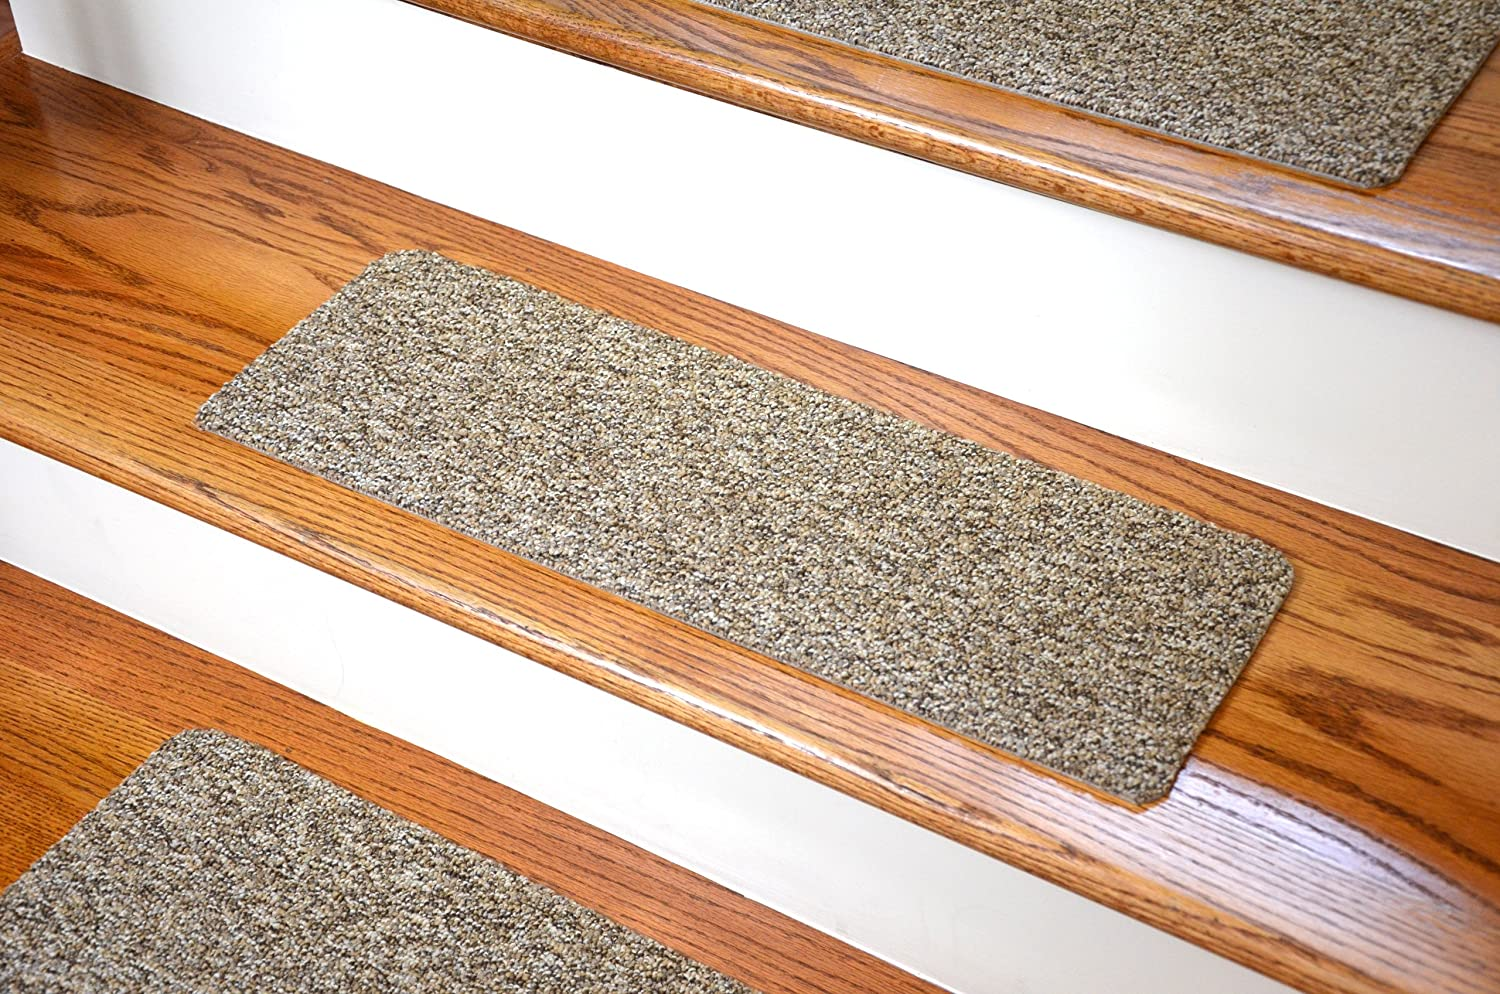 Dean Affordable Non Skid DIY Peel U0026 Stick Carpet Stair Treads   Color:  Beige U0026 Brown Tweed   Set Of 13: Staircase Step Treads: Amazon.com:  Industrial U0026 ...